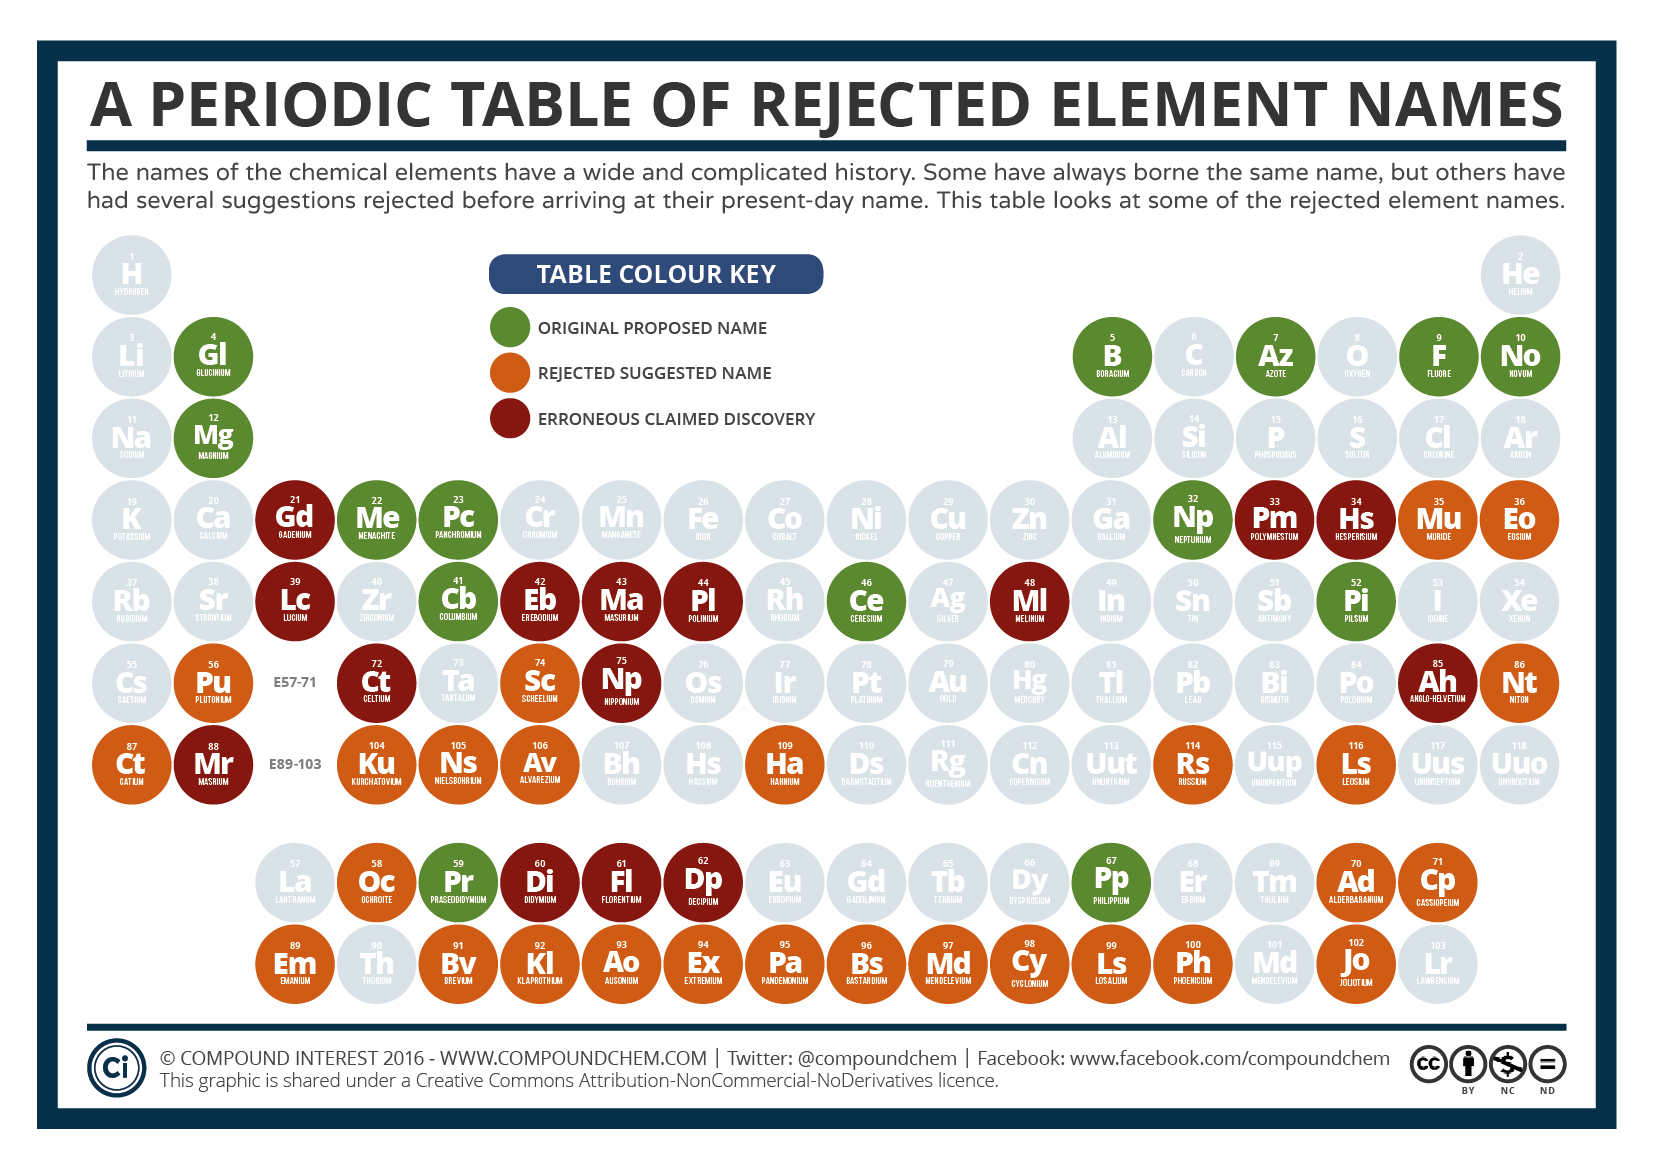 Periodic table of rejected elements science education periodic table of rejected elements gamestrikefo Choice Image